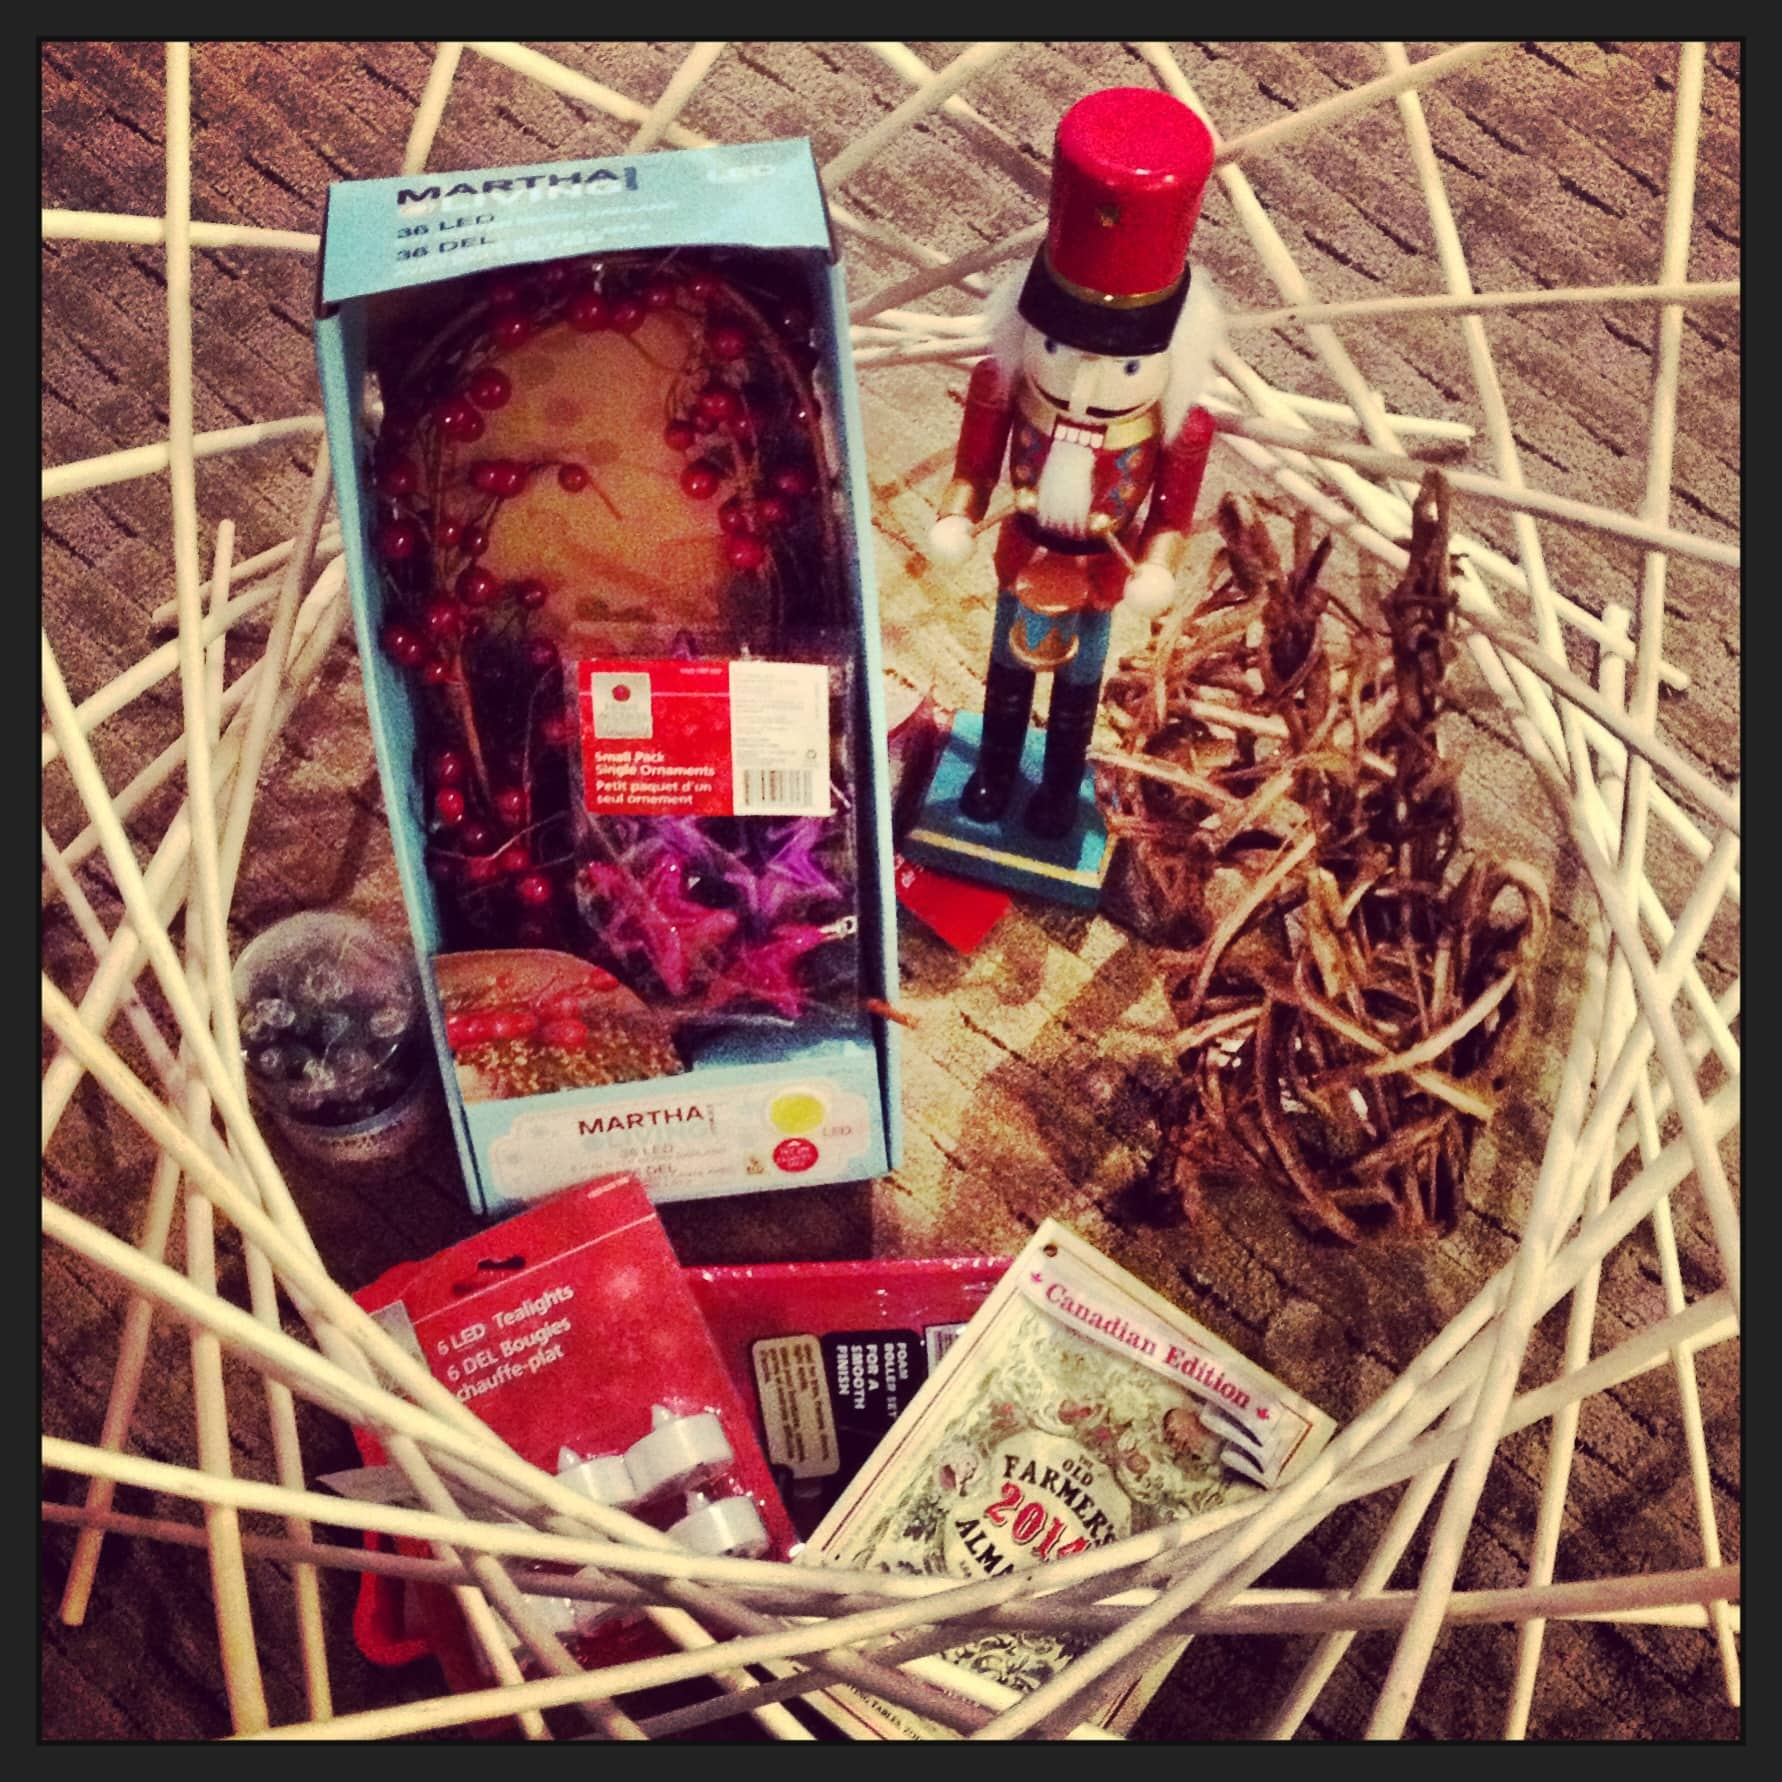 Home Depot Christmas gift package